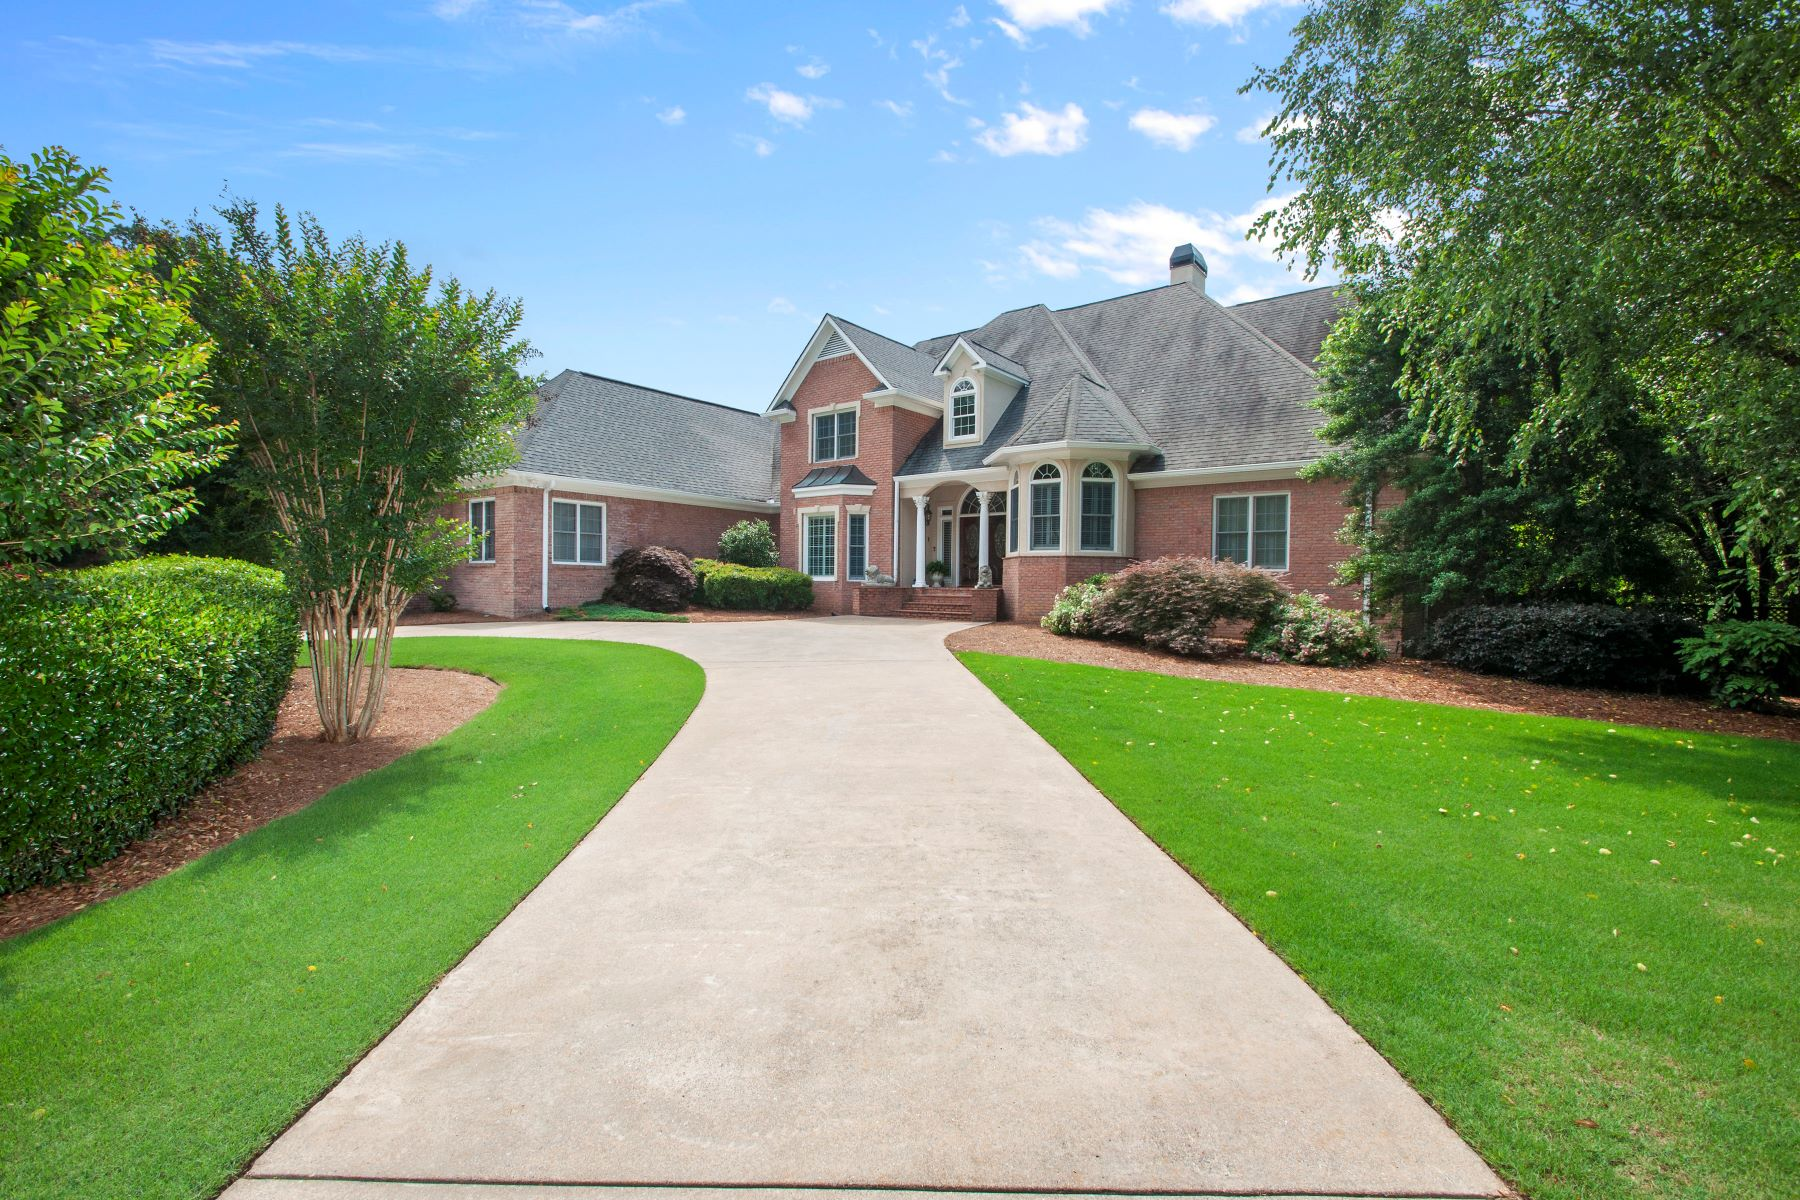 Villa per Vendita alle ore Showcase Home In The Waterford 483 Waterford Drive Cartersville, Georgia 30120 Stati Uniti